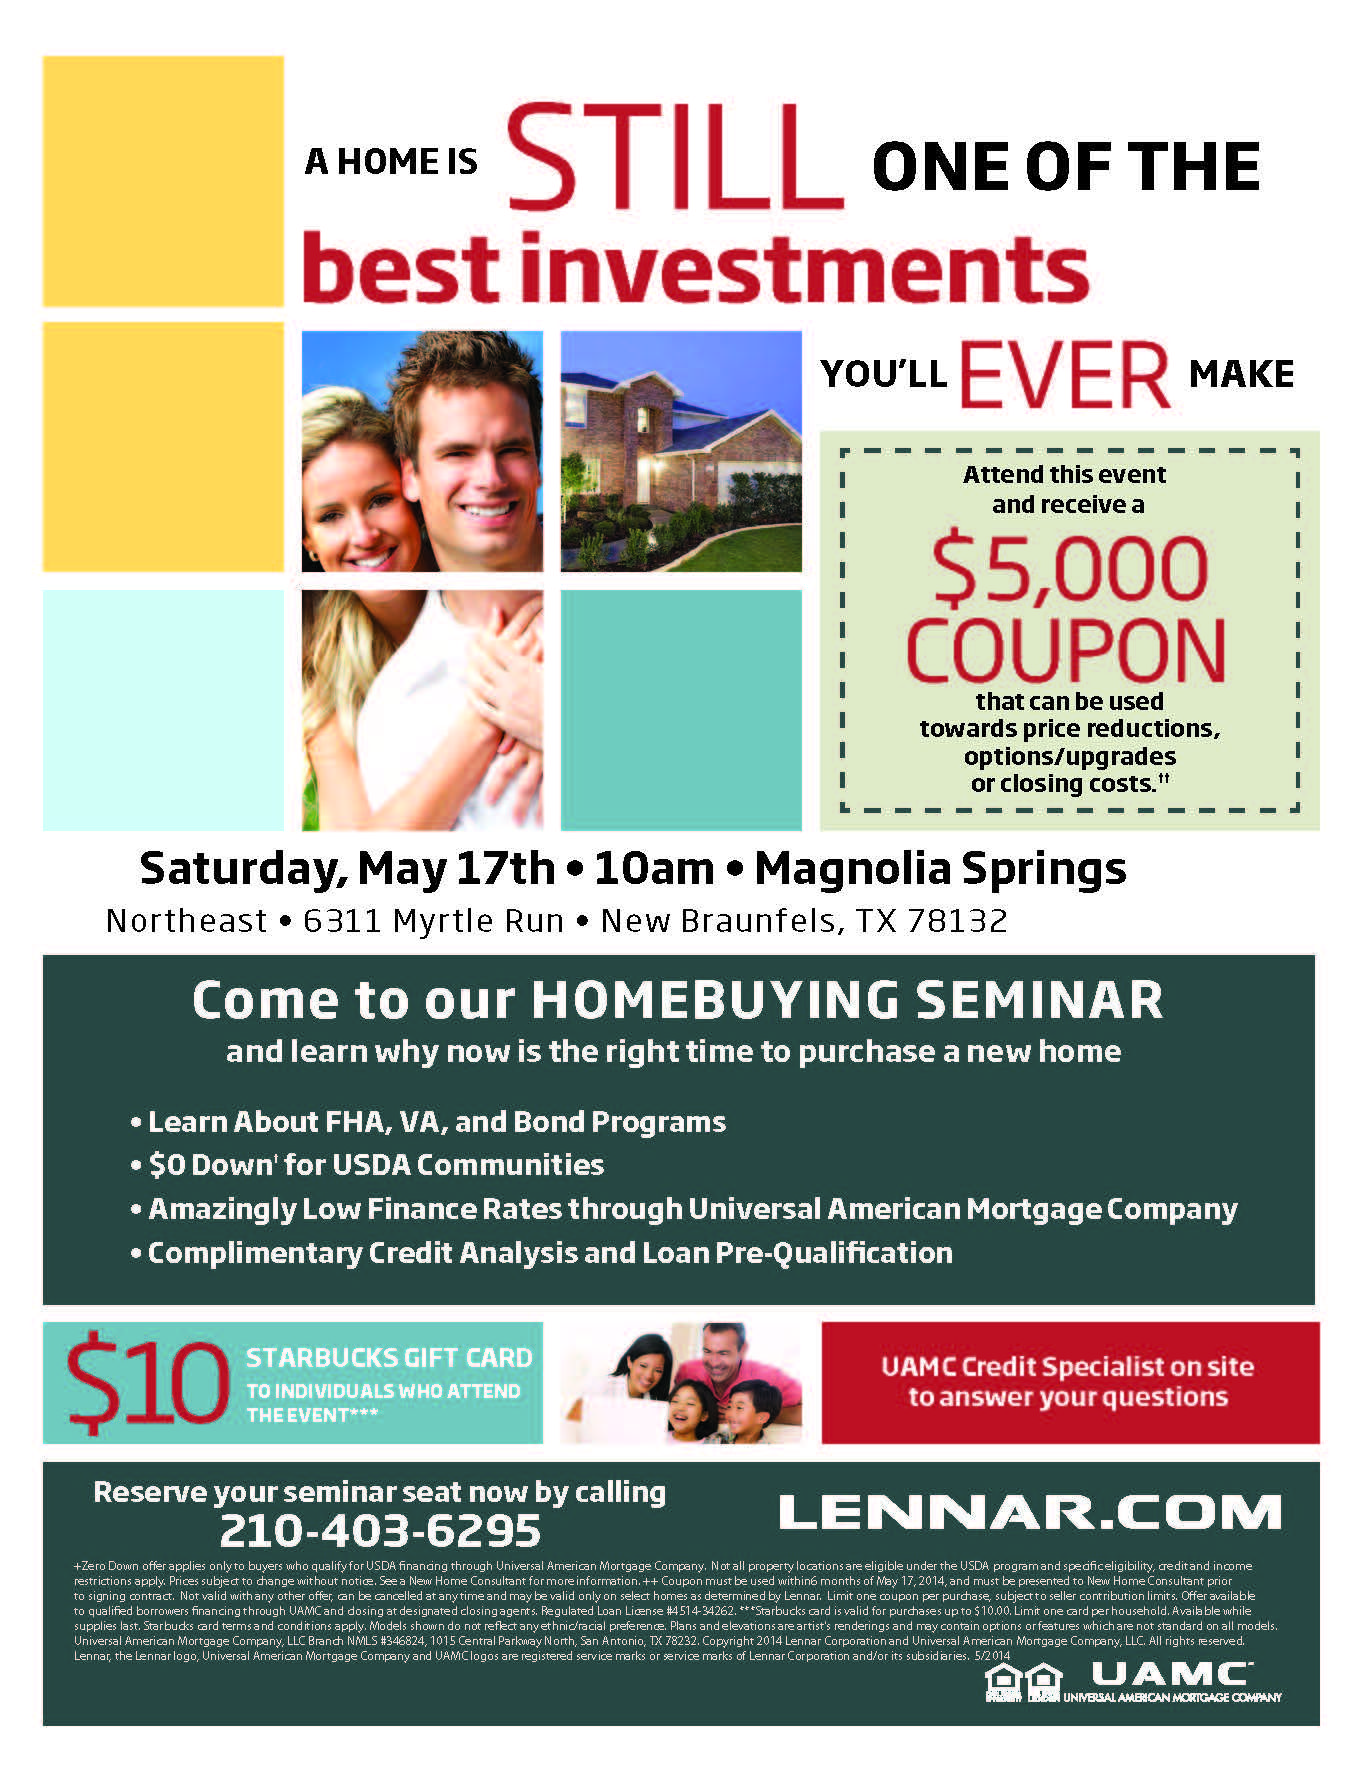 Pin Now And Come To Our Home Buyer Seminar On May Th Rsvp Today